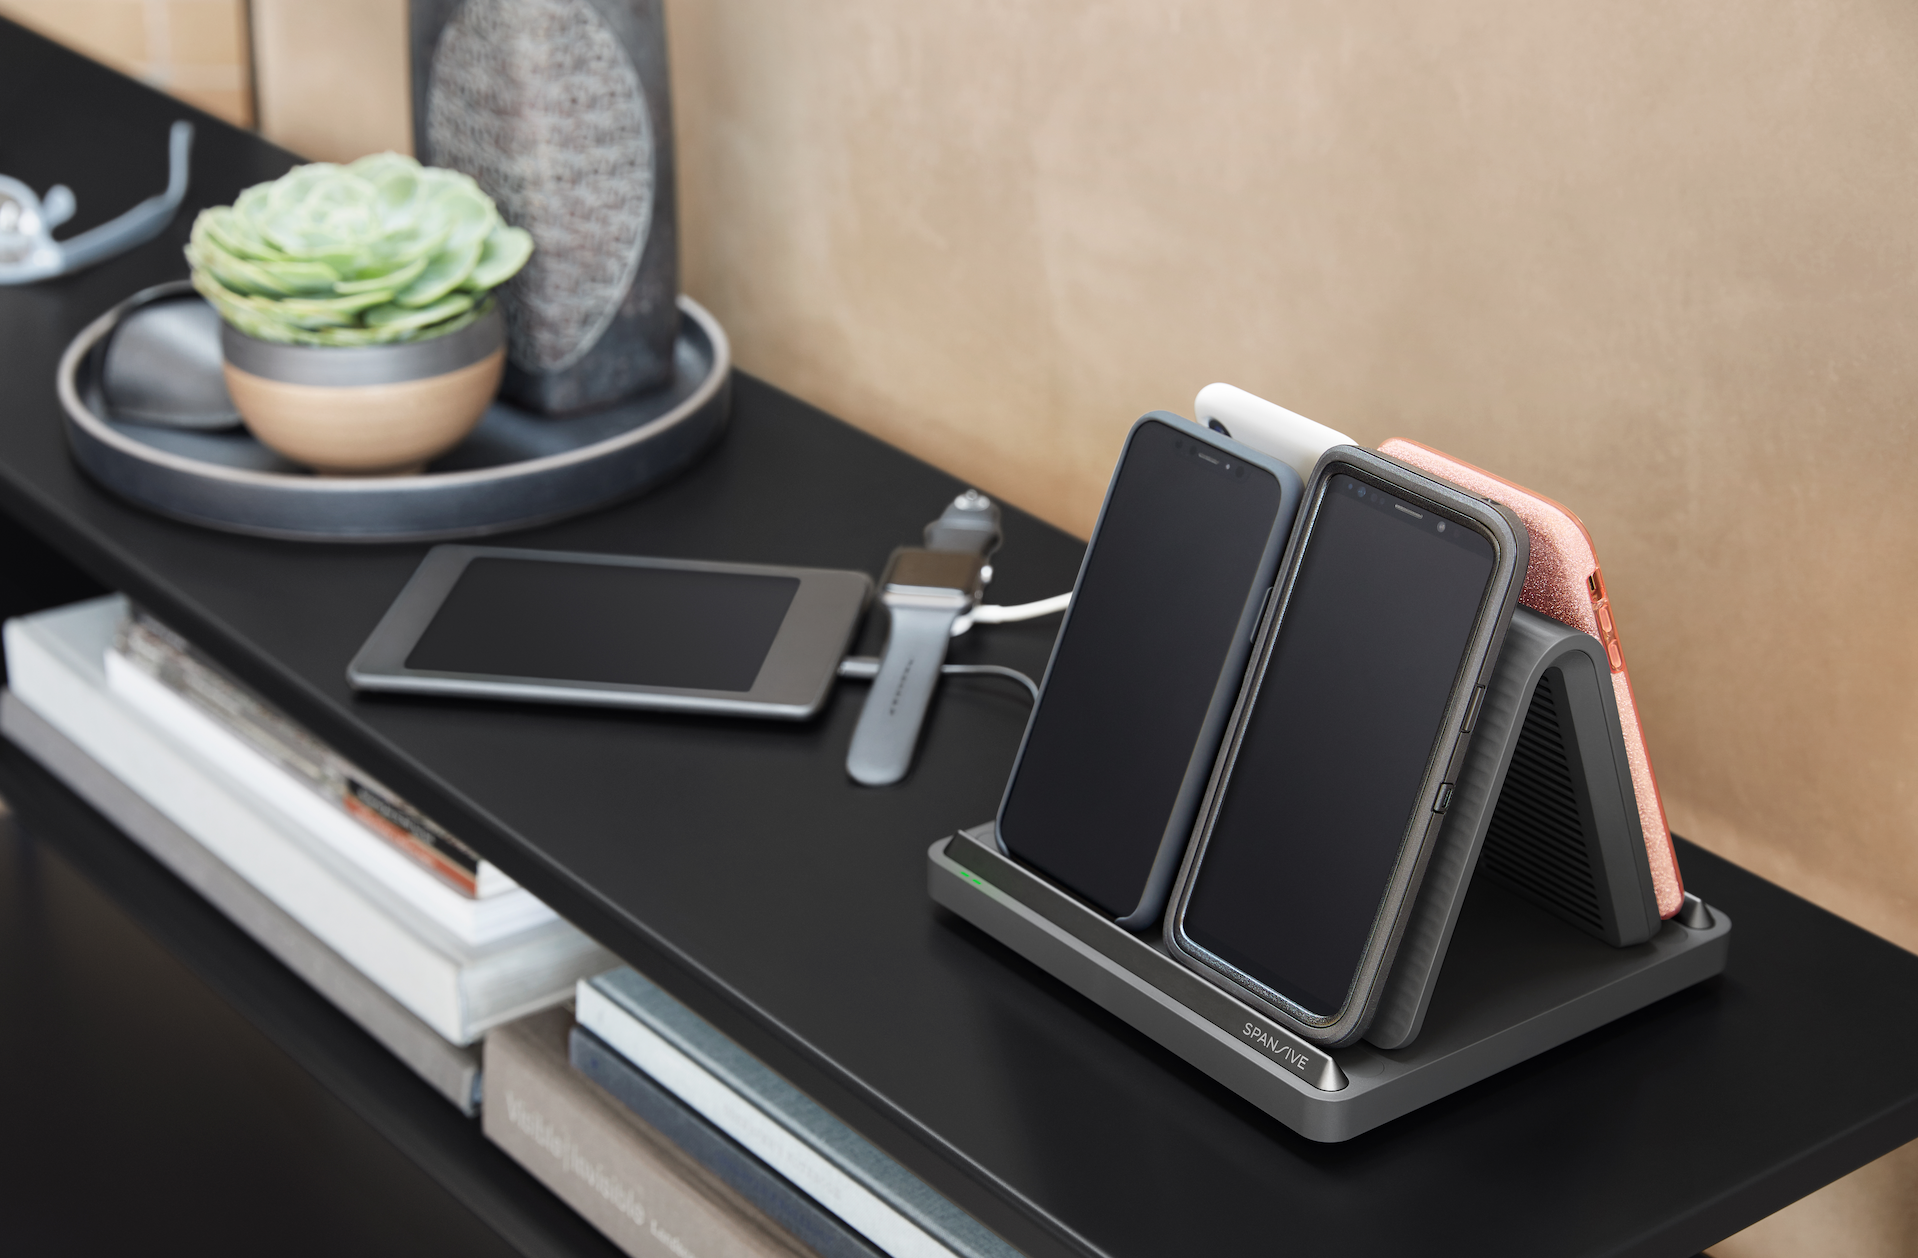 techcrunch.com - Greg Kumparak - Spansive's first wireless charger powers multiple phones simultaneously and works through thick cases